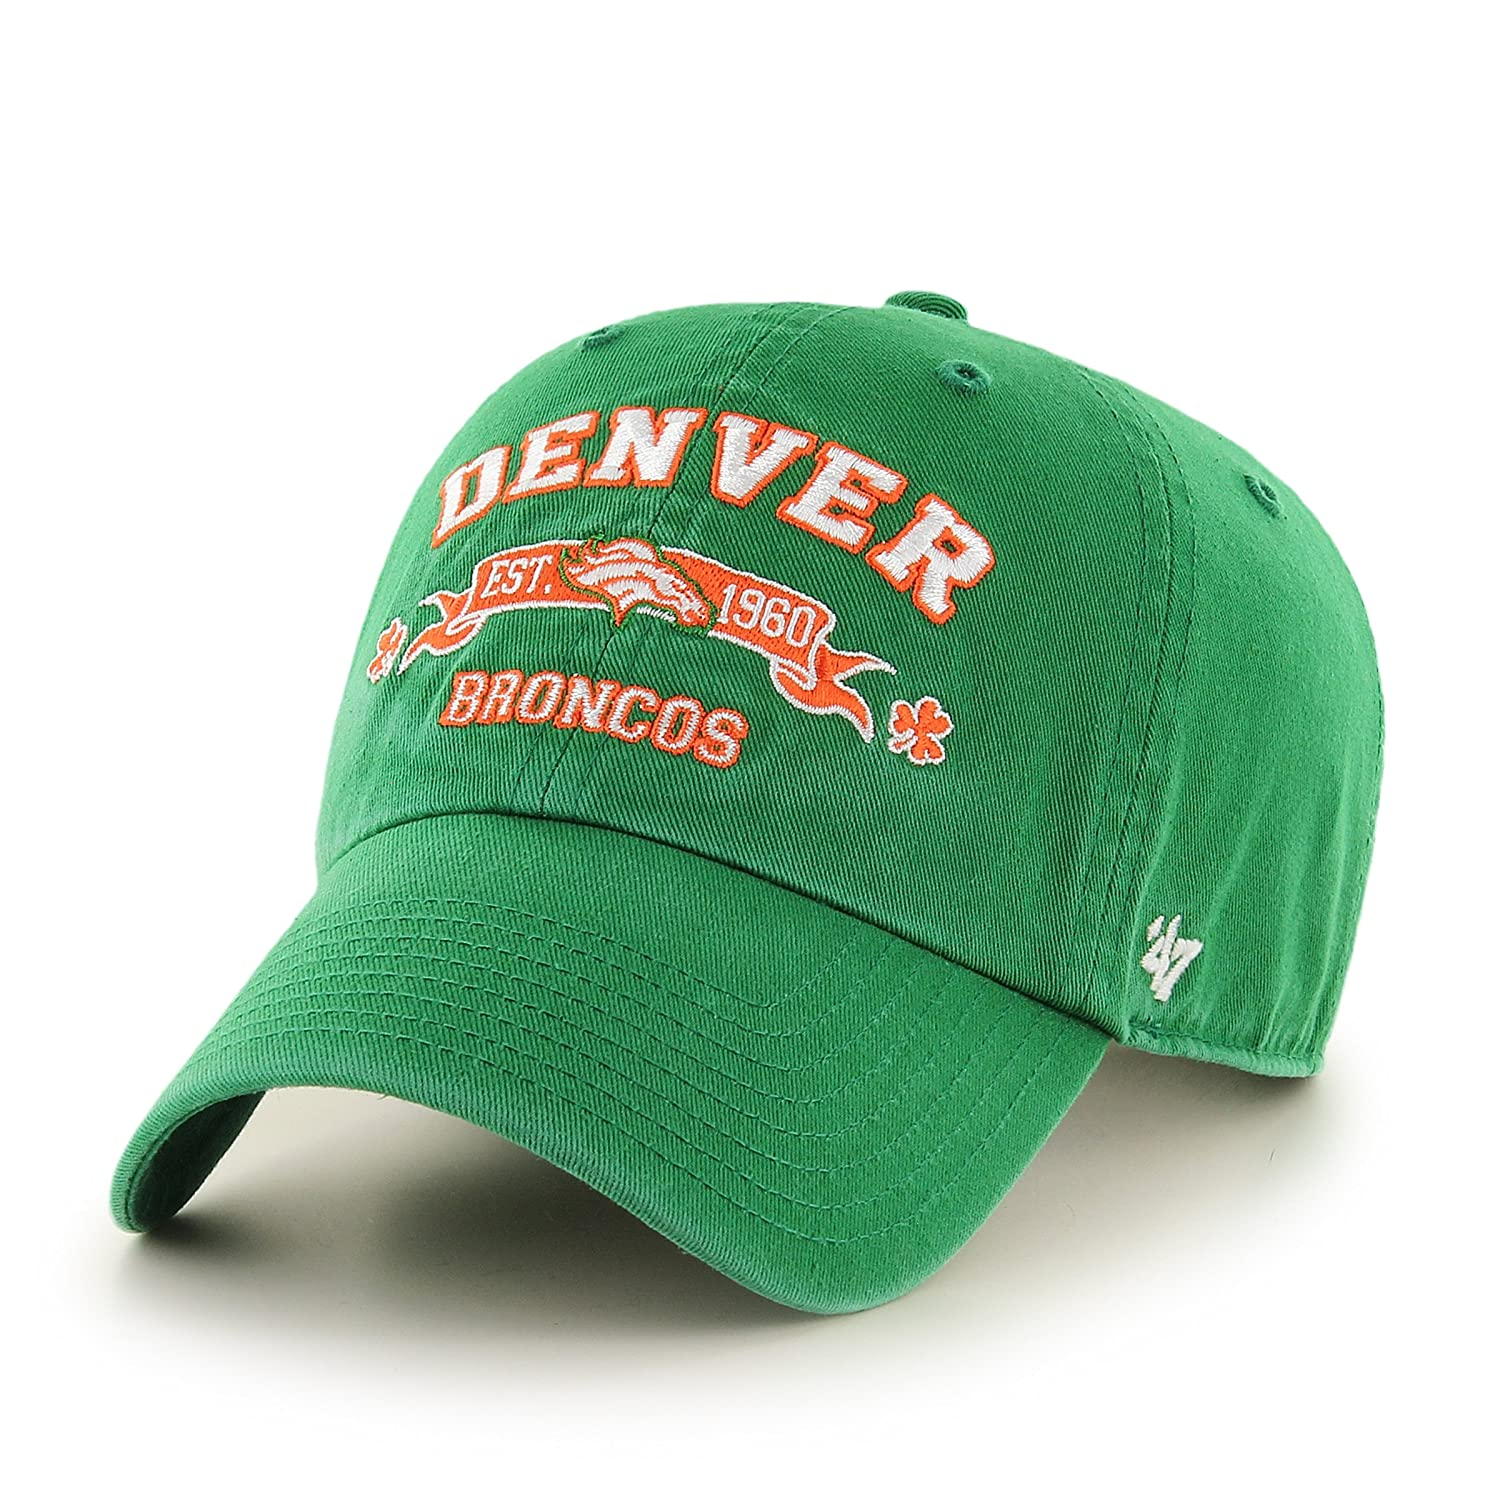 Amazon.com    47 NFL Denver Broncos Relaxed Fit Retro St. Patty s  Embroidered Cap   Sports   Outdoors 21ba3e9dc